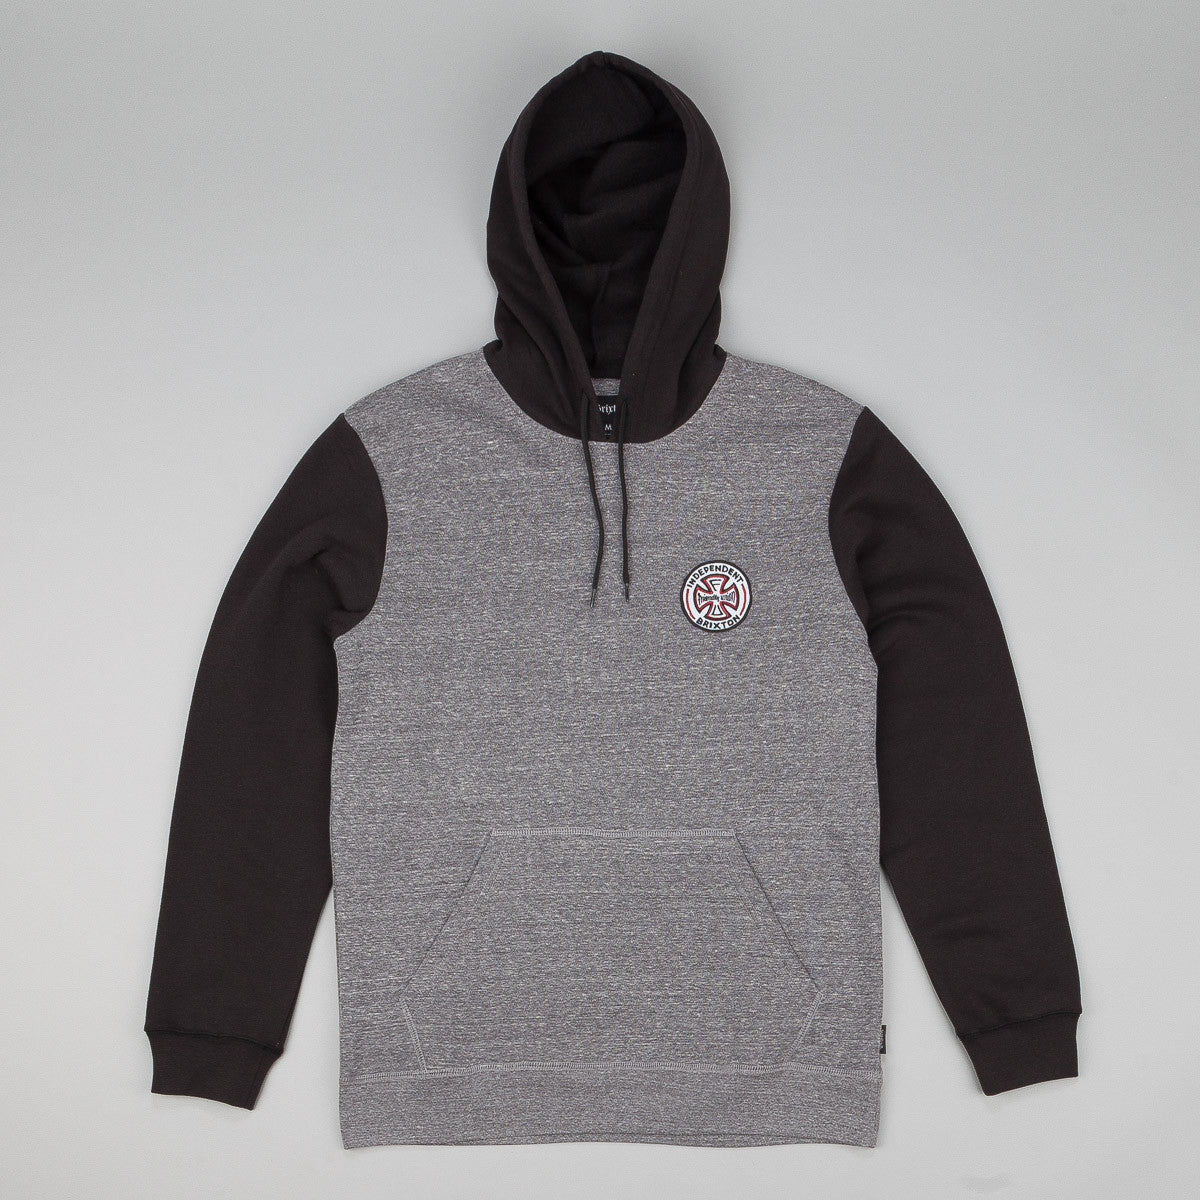 Brixton Wilkinson Hooded Sweatshirt